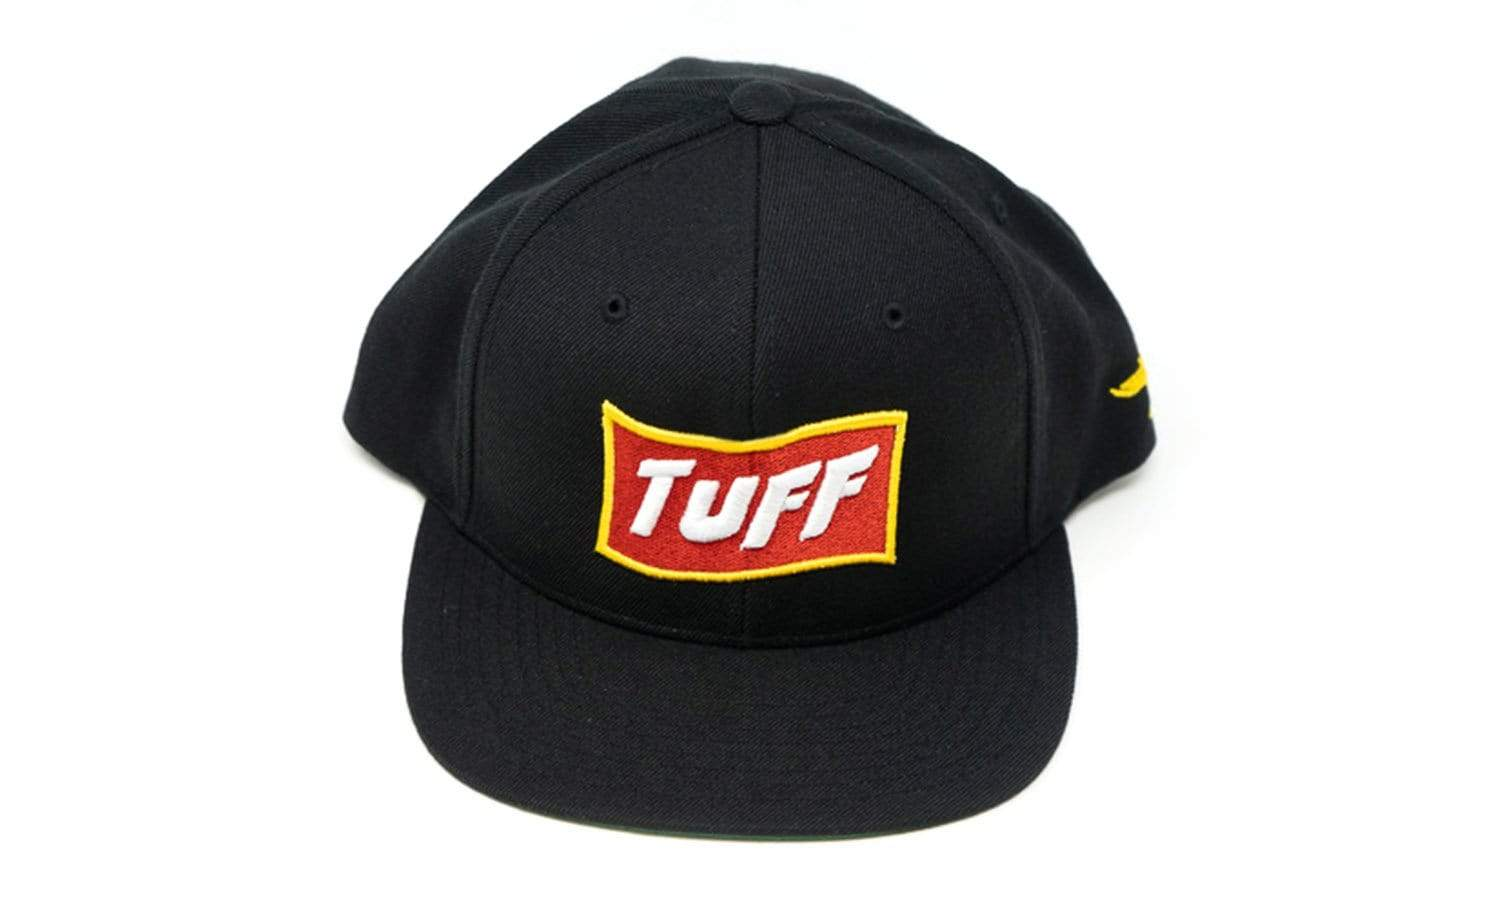 TUFF High Octane Yellow/Red Snapback Hat TuffWraps.com